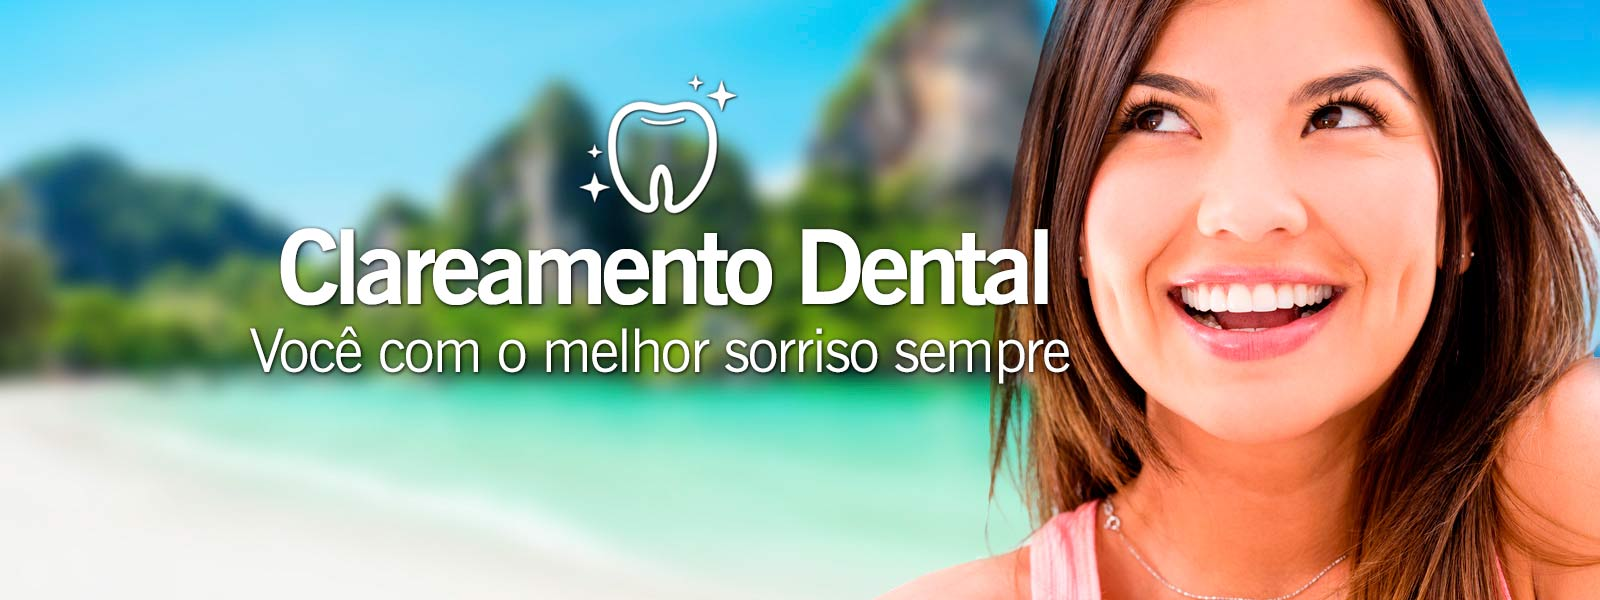 slide1-clareamento-dental